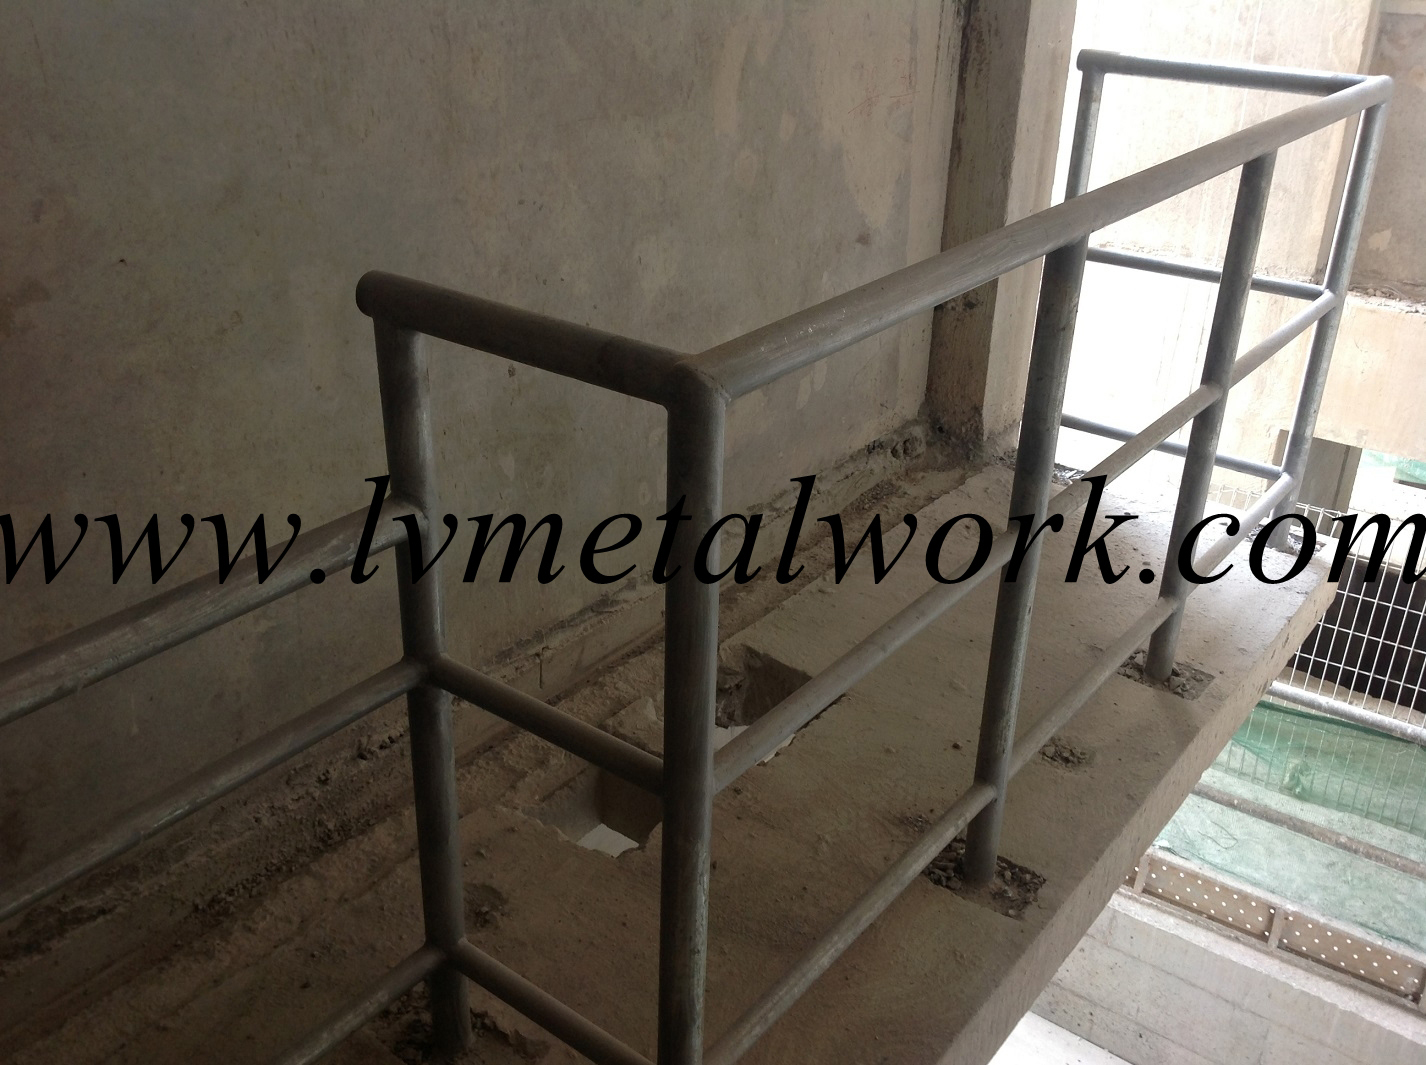 Railing, Steel Railing, Metal Railing, Balcony Railings, Stair Railing,  Pedestrian Guardrail, Handrail, Stainless Steel Railing, Guardrail